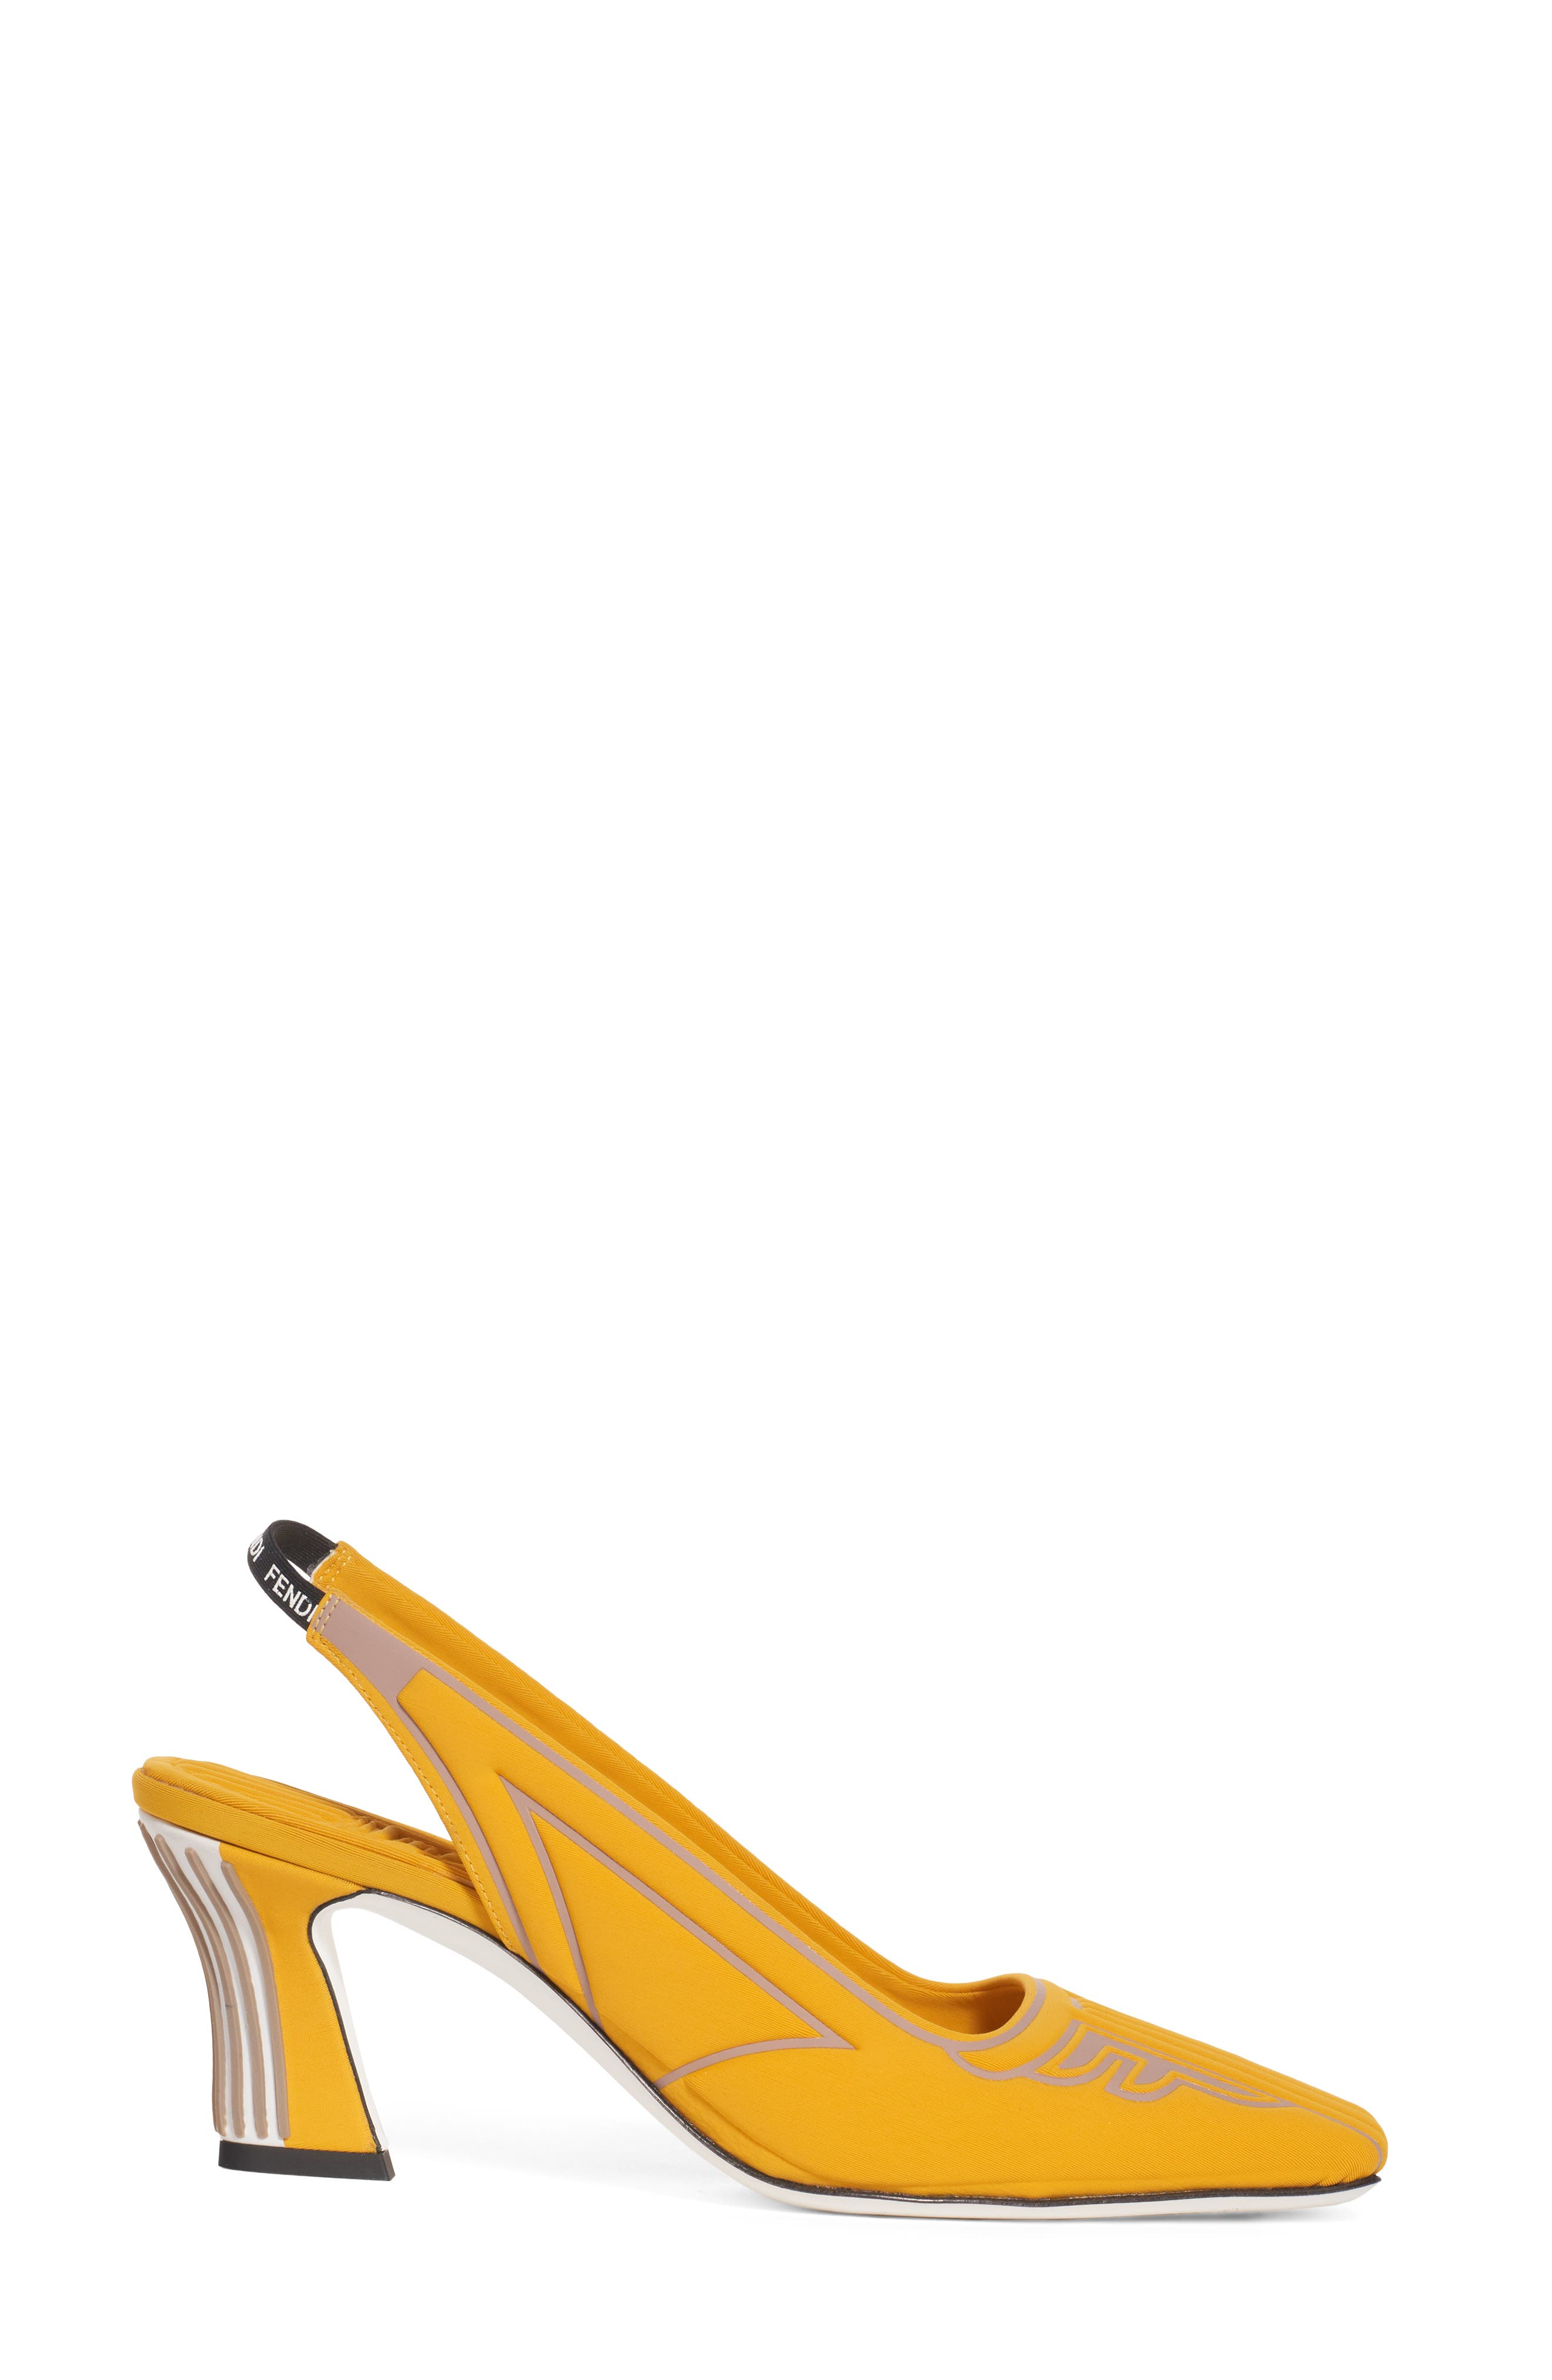 FENDI, FFreedom Logo Slingback Pump, Alternate thumbnail 3, color, YELLOW